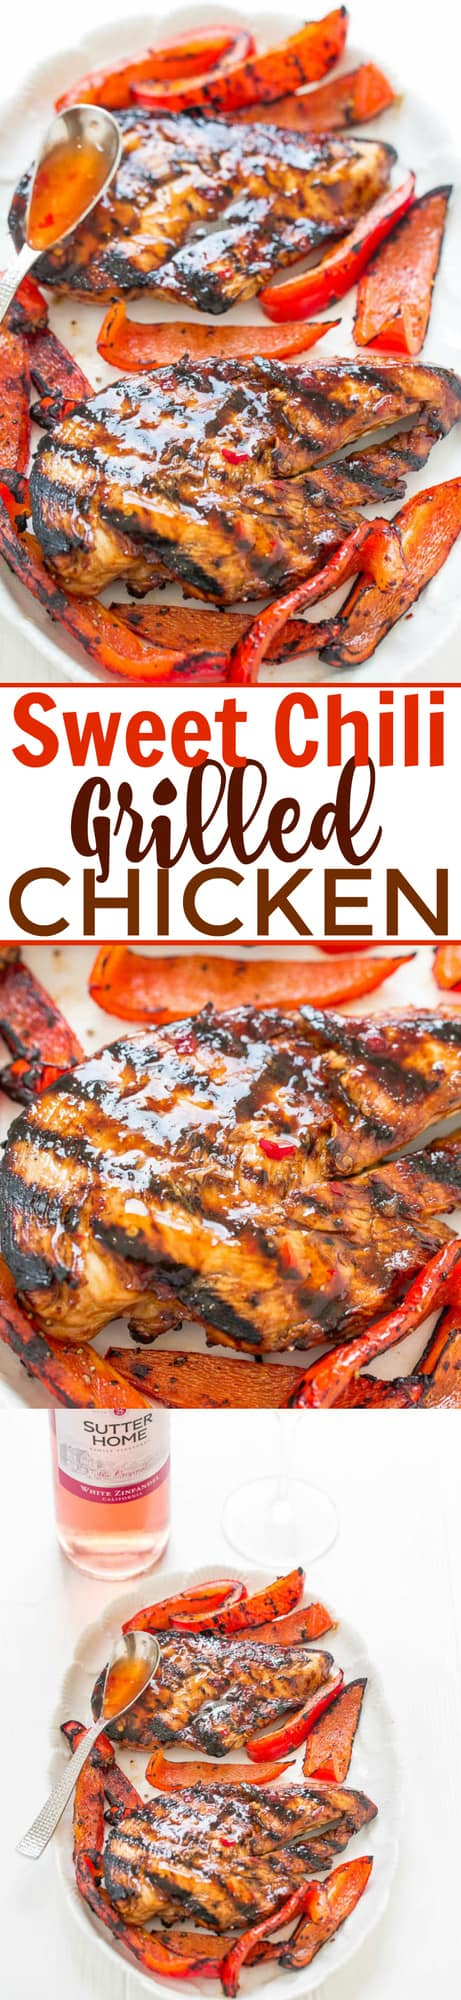 Grilled Sweet Chili Chicken — Tender, juicy, and full of FLAVOR from the sweet chili sauce!! EASY, healthy, ready in 10 minutes, zero cleanup, perfect for backyard barbecues or easy weeknight dinners!!